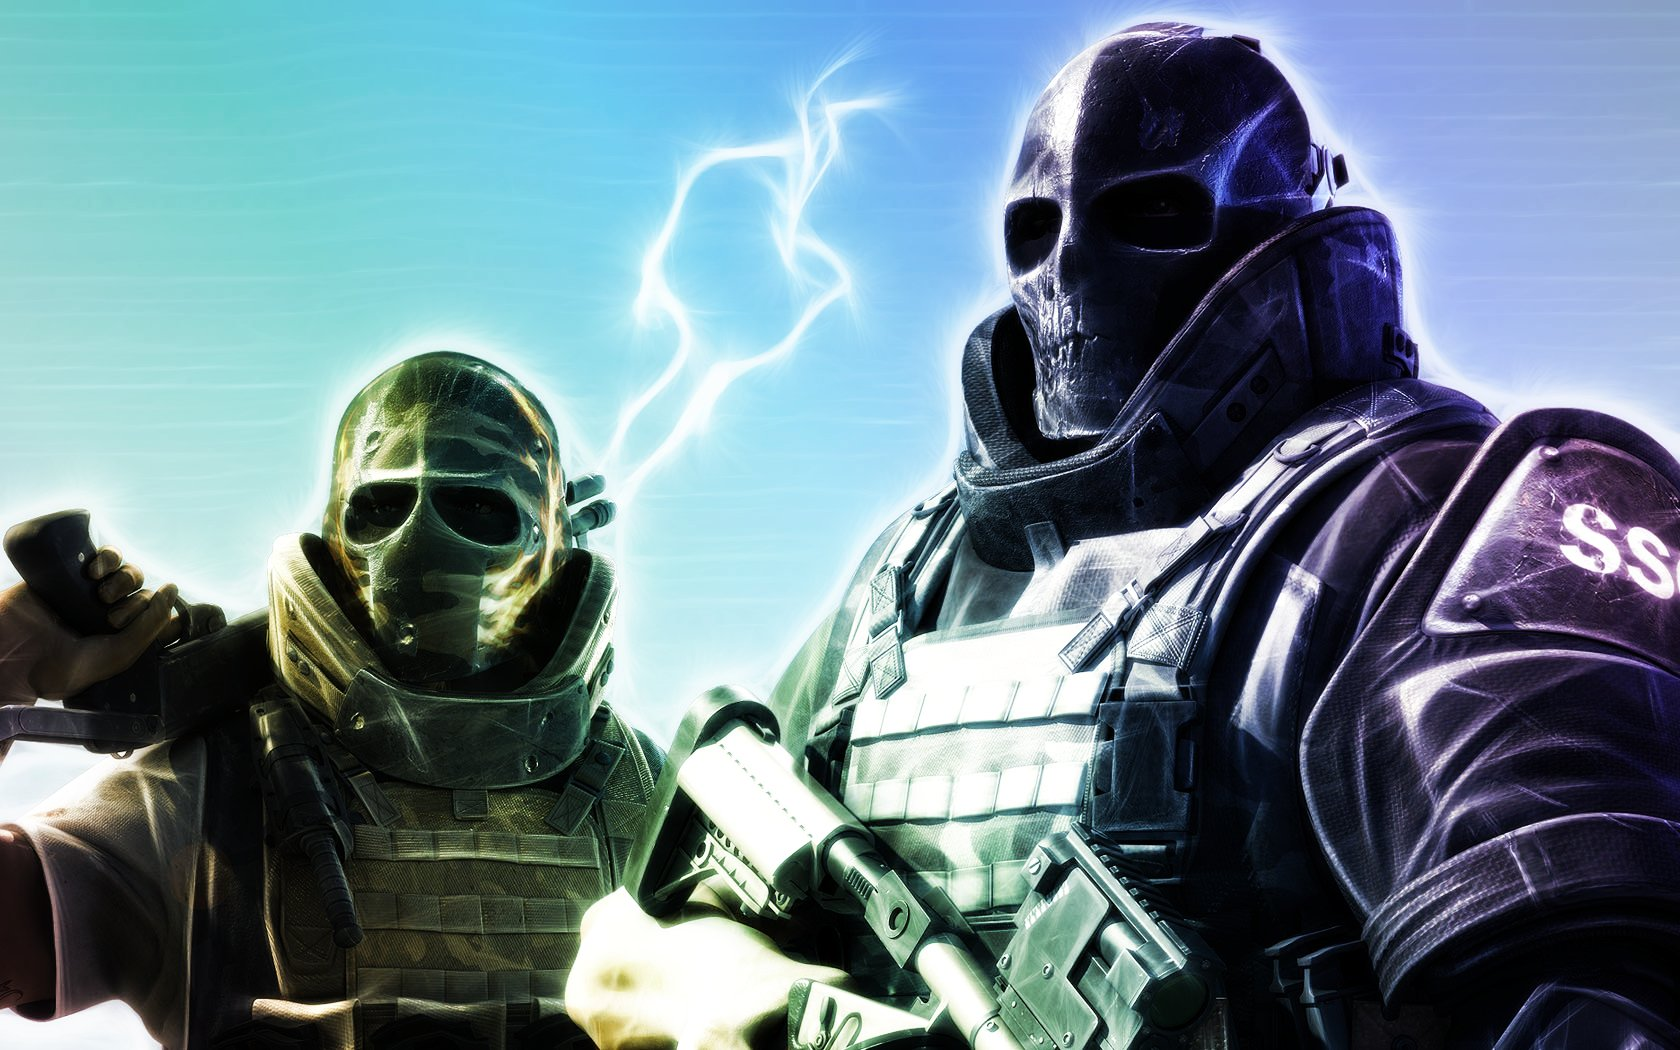 Army Of Two HD Wallpaper | Background Image | 1920x1080 ... |Army Of Two Wallpaper 1920x1080